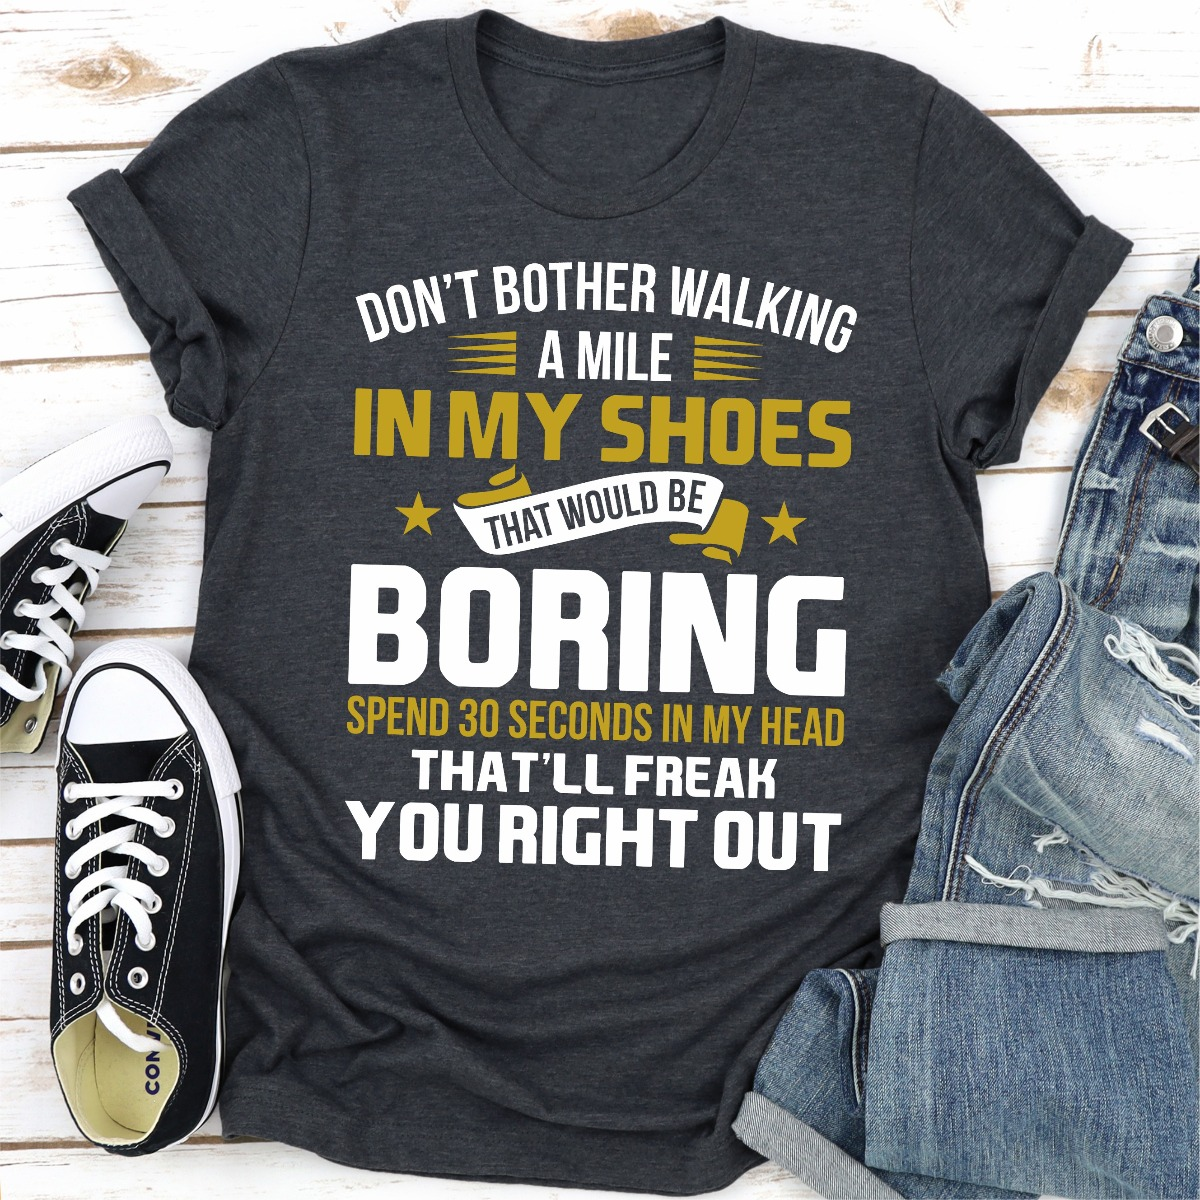 Don't Bother Walking A Mile In My Shoes (Dark Heather / 3Xl)